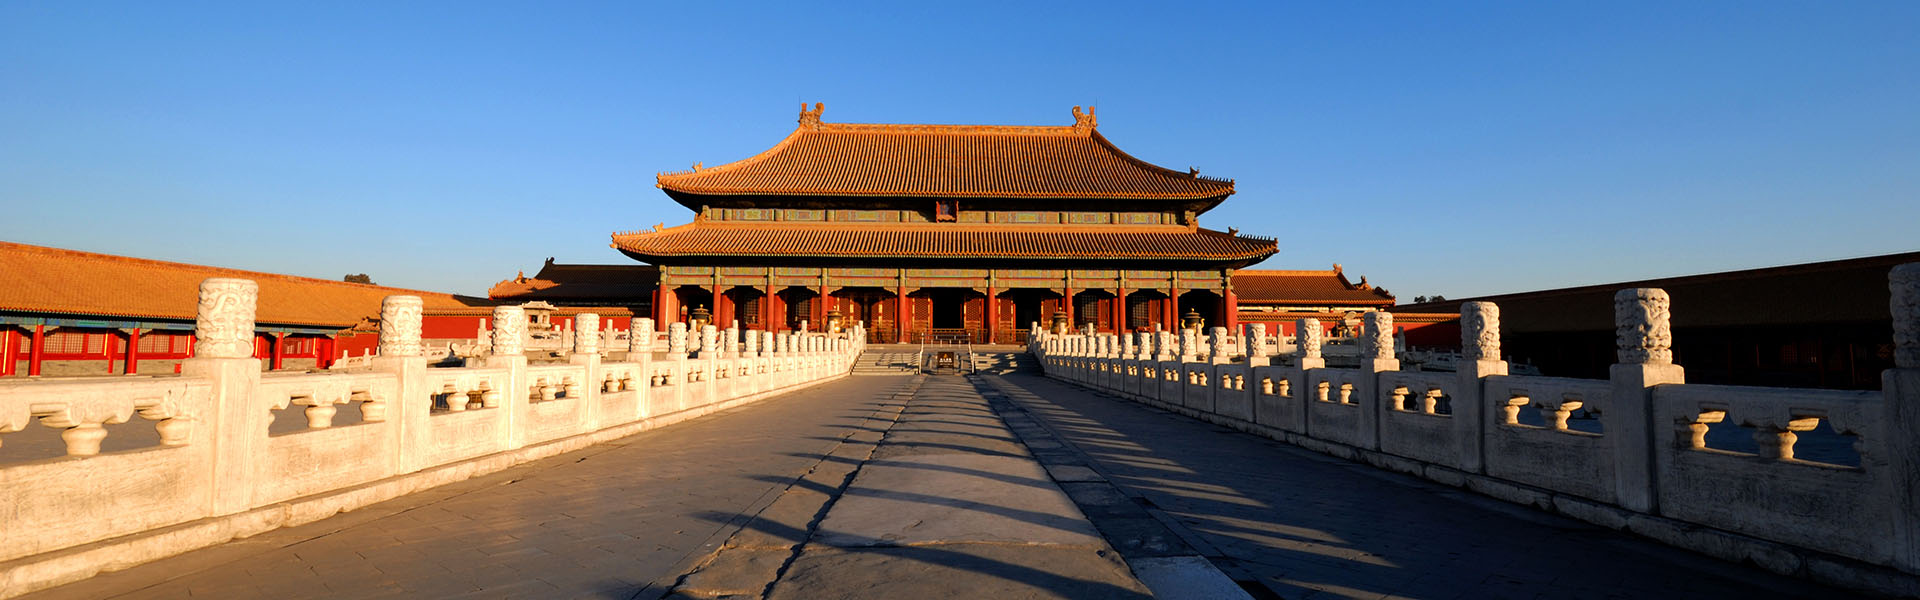 Step into China's splendid culture & 5,000 years old history